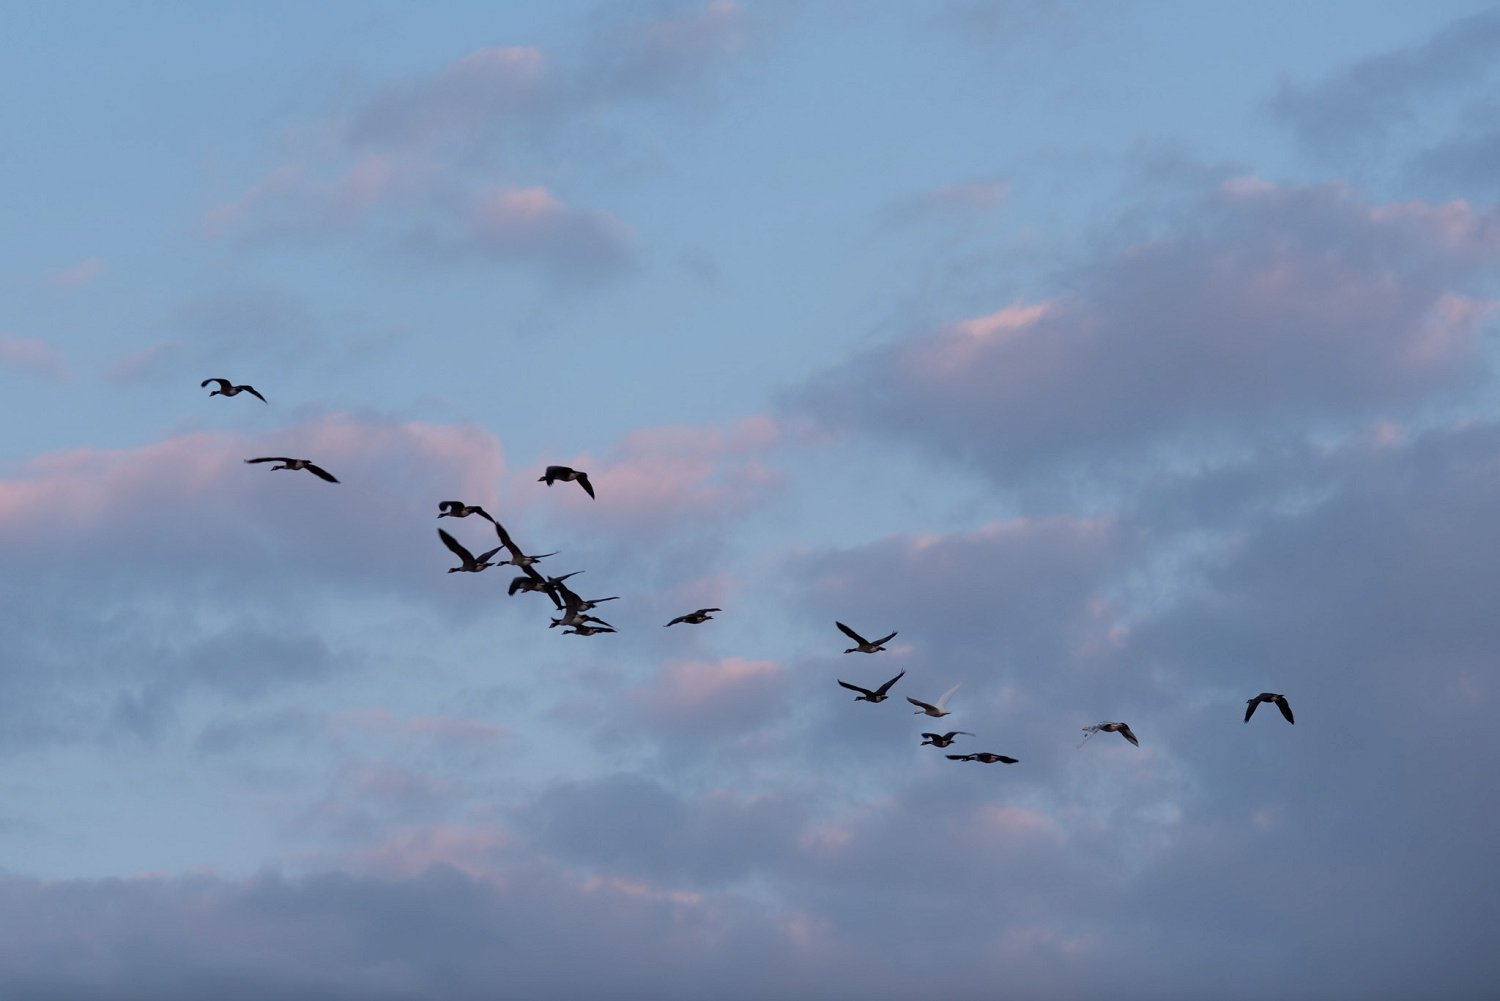 A team of geese in flight above Redbank barn near Hereford